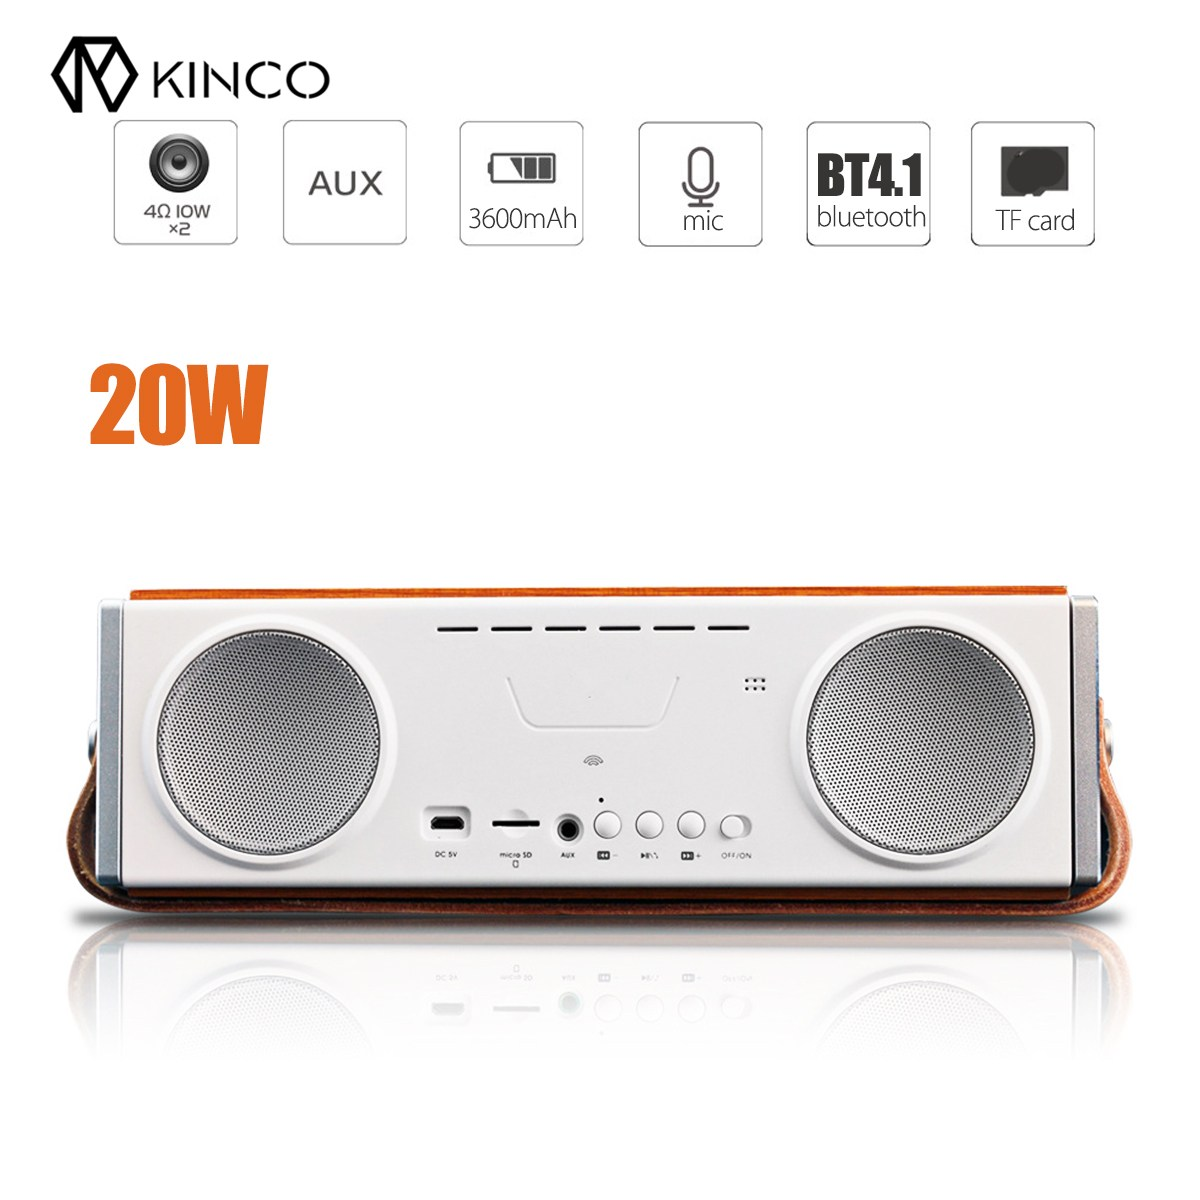 Kinco 20W Portable Wooden Bluetooth Wireless HiFi Dual Speaker Bass 4.1 Stereo Subwoofer Support Hifi TF USB SG a9 mini wireless bluetooth speaker w led hands free tf usb subwoofer loudspeakers portable 3 5mm mp3 stereo audio music player